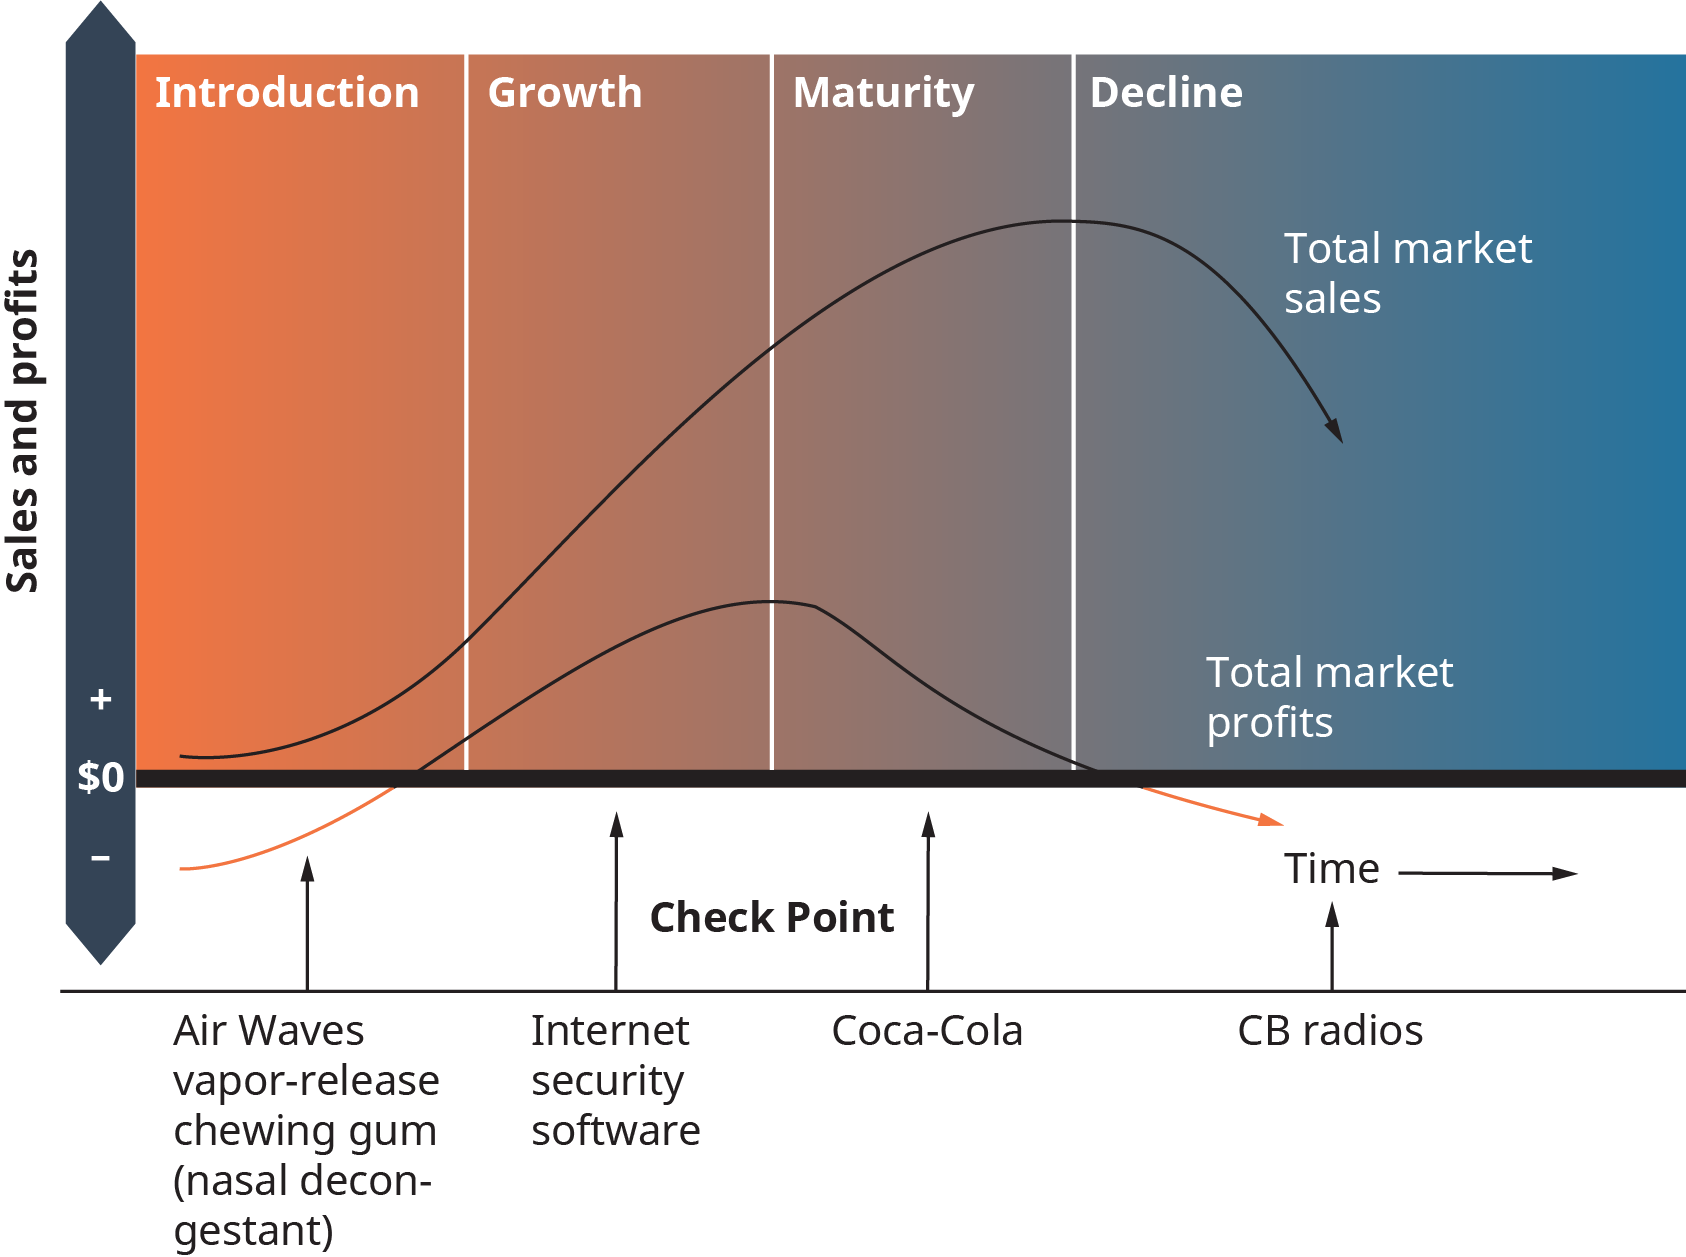 The Product Life Cycle – Introduction to Business